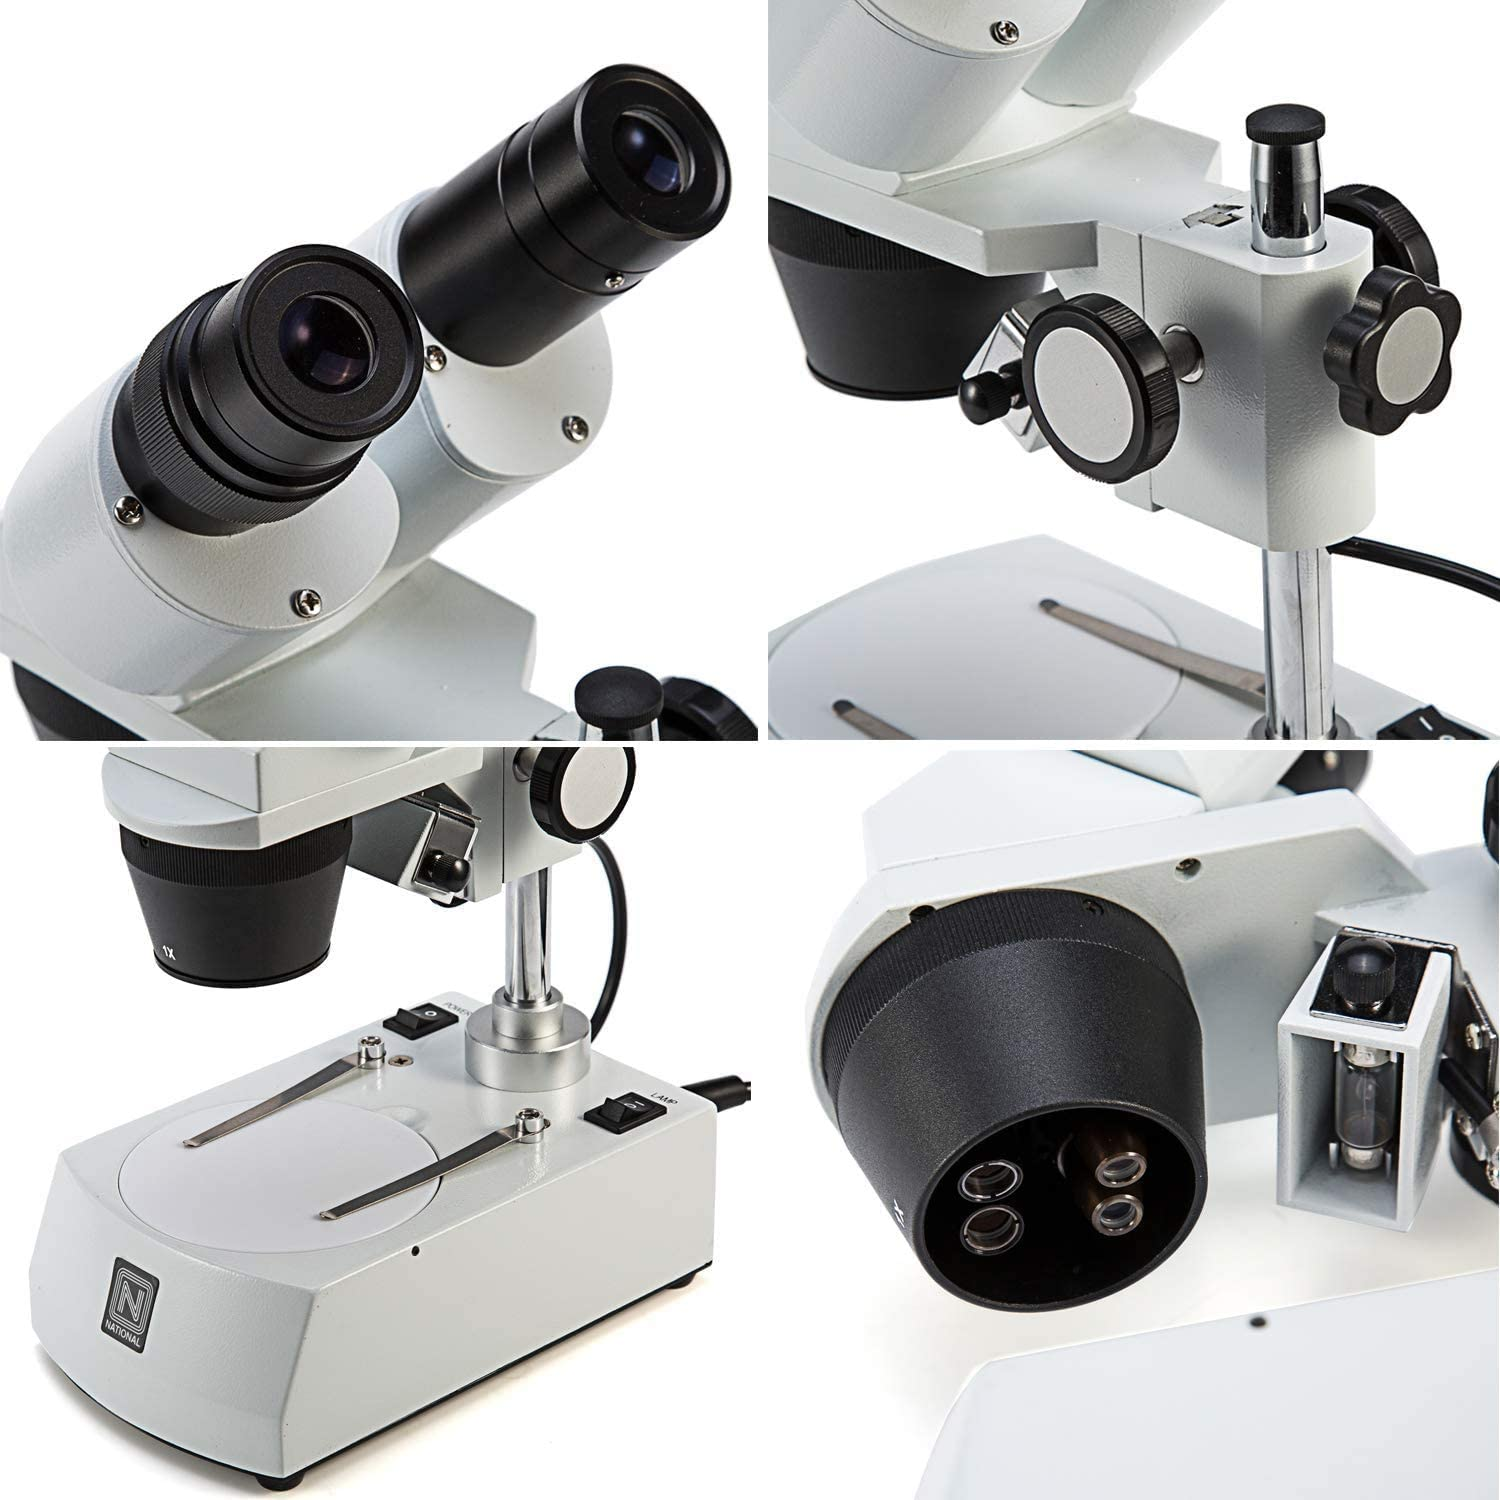 Tungsten Lighting Swift S303 10X//30X Magnification Binocular Stereo Microscope with Wide-field 10X Eyepieces and Fixed Pillar Stand Reversible Black//White Stage Plate